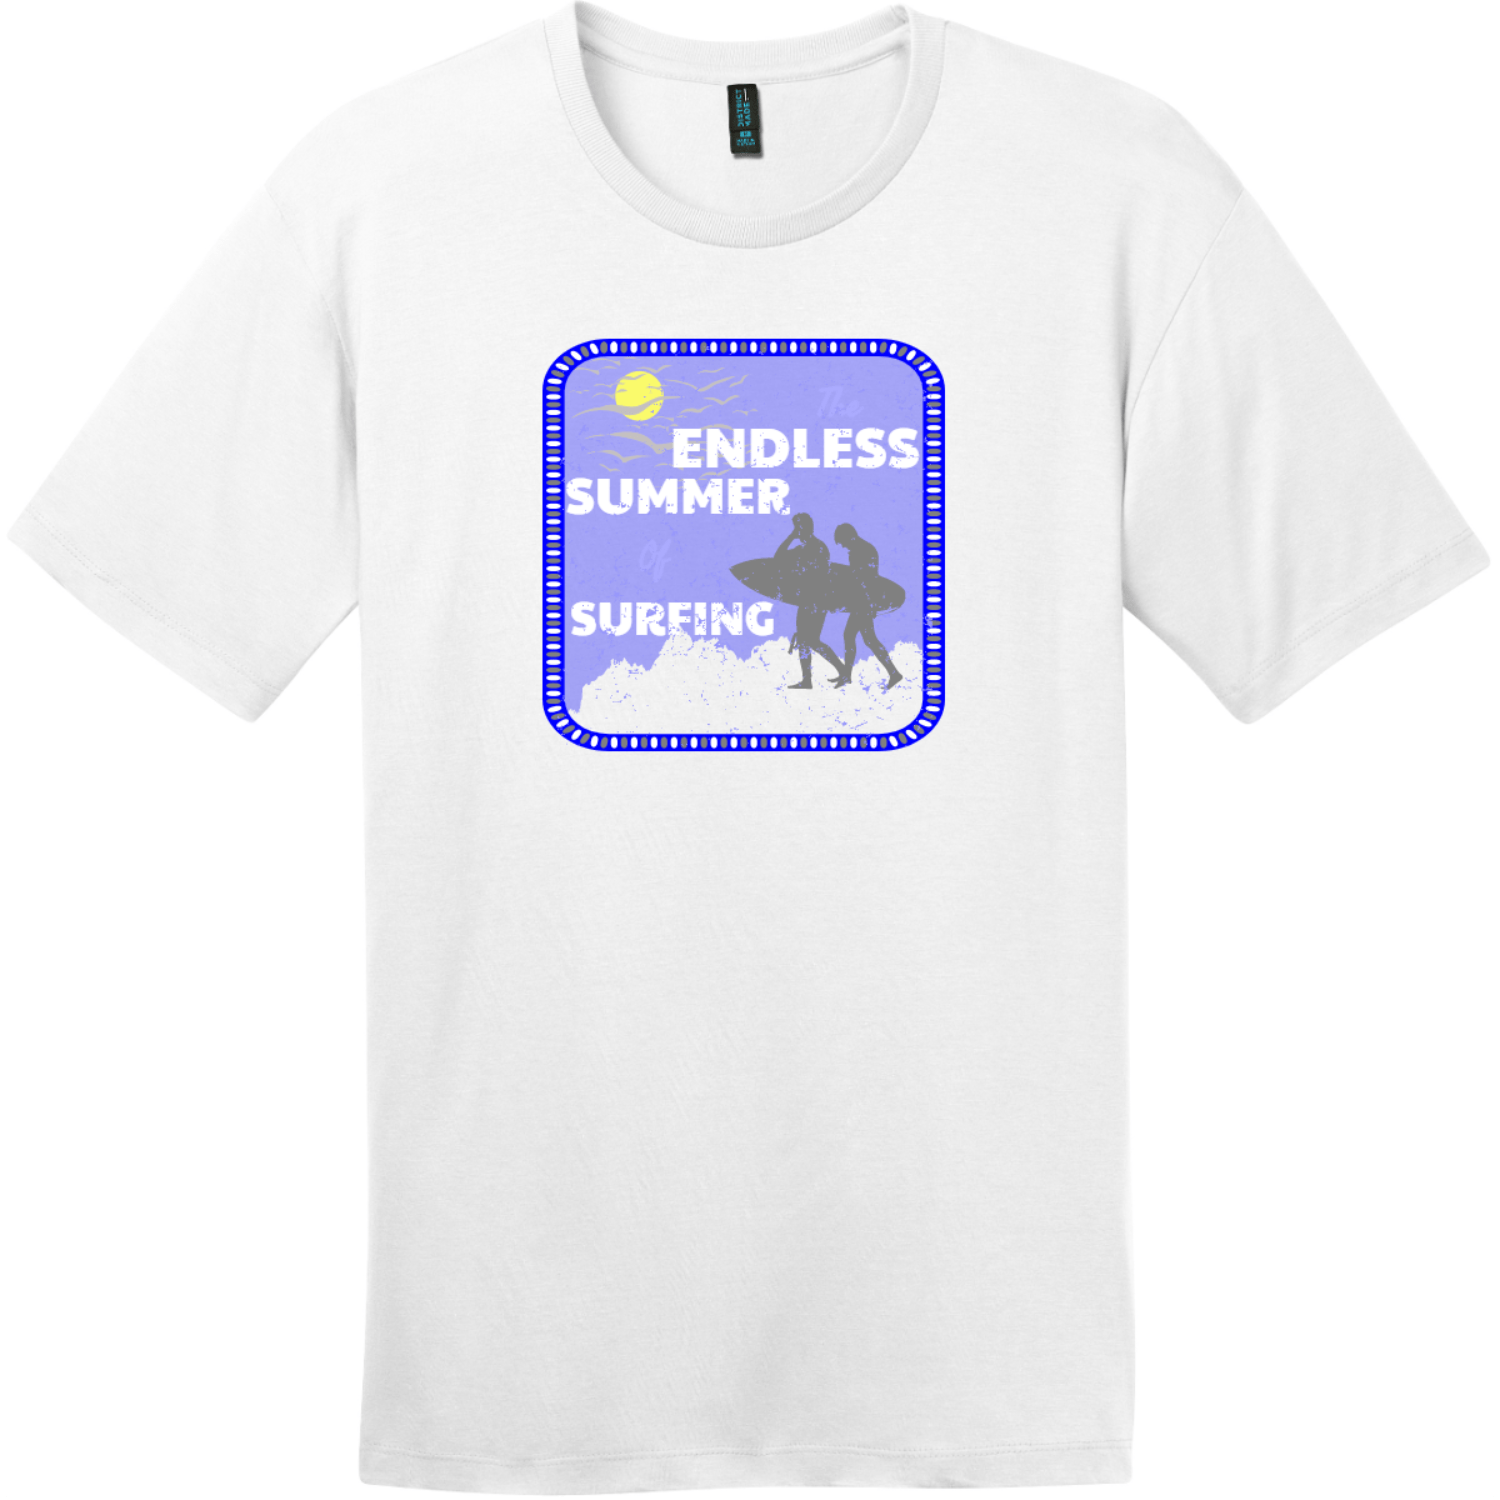 Endless Summer Bright White District Perfect Weight Tee DT104